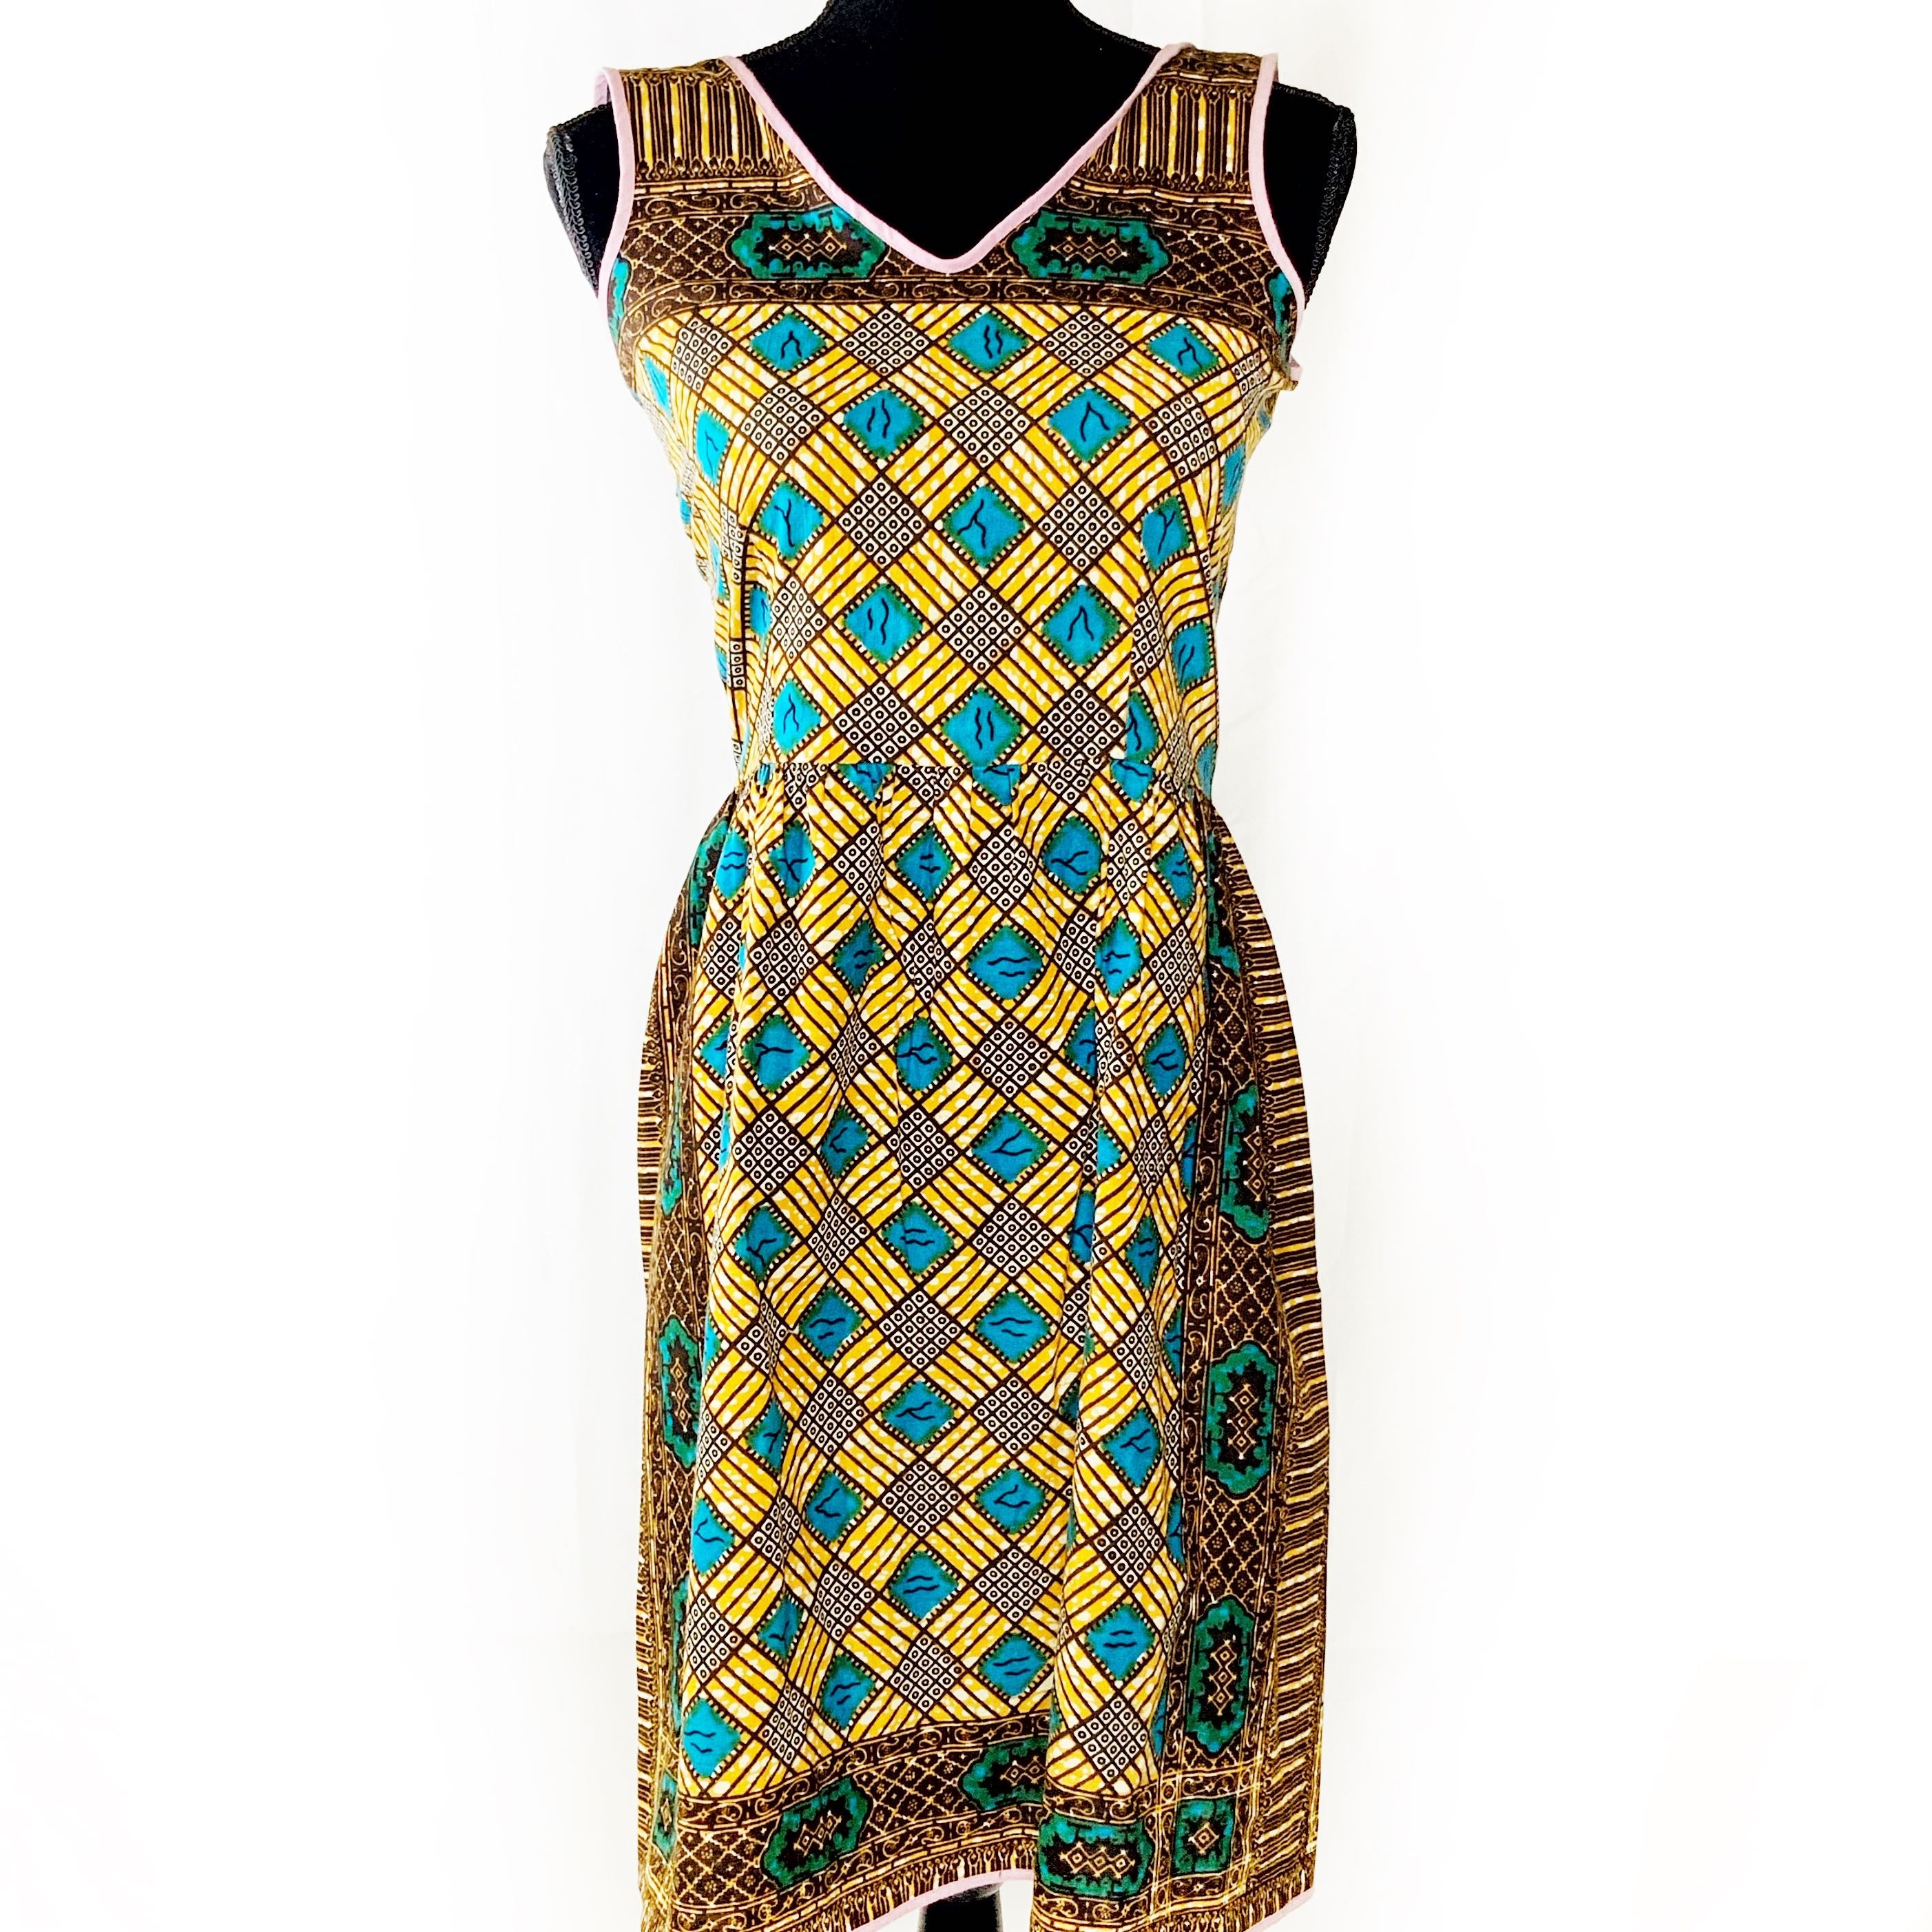 Yellow, Brown and Teal Patterned Dress